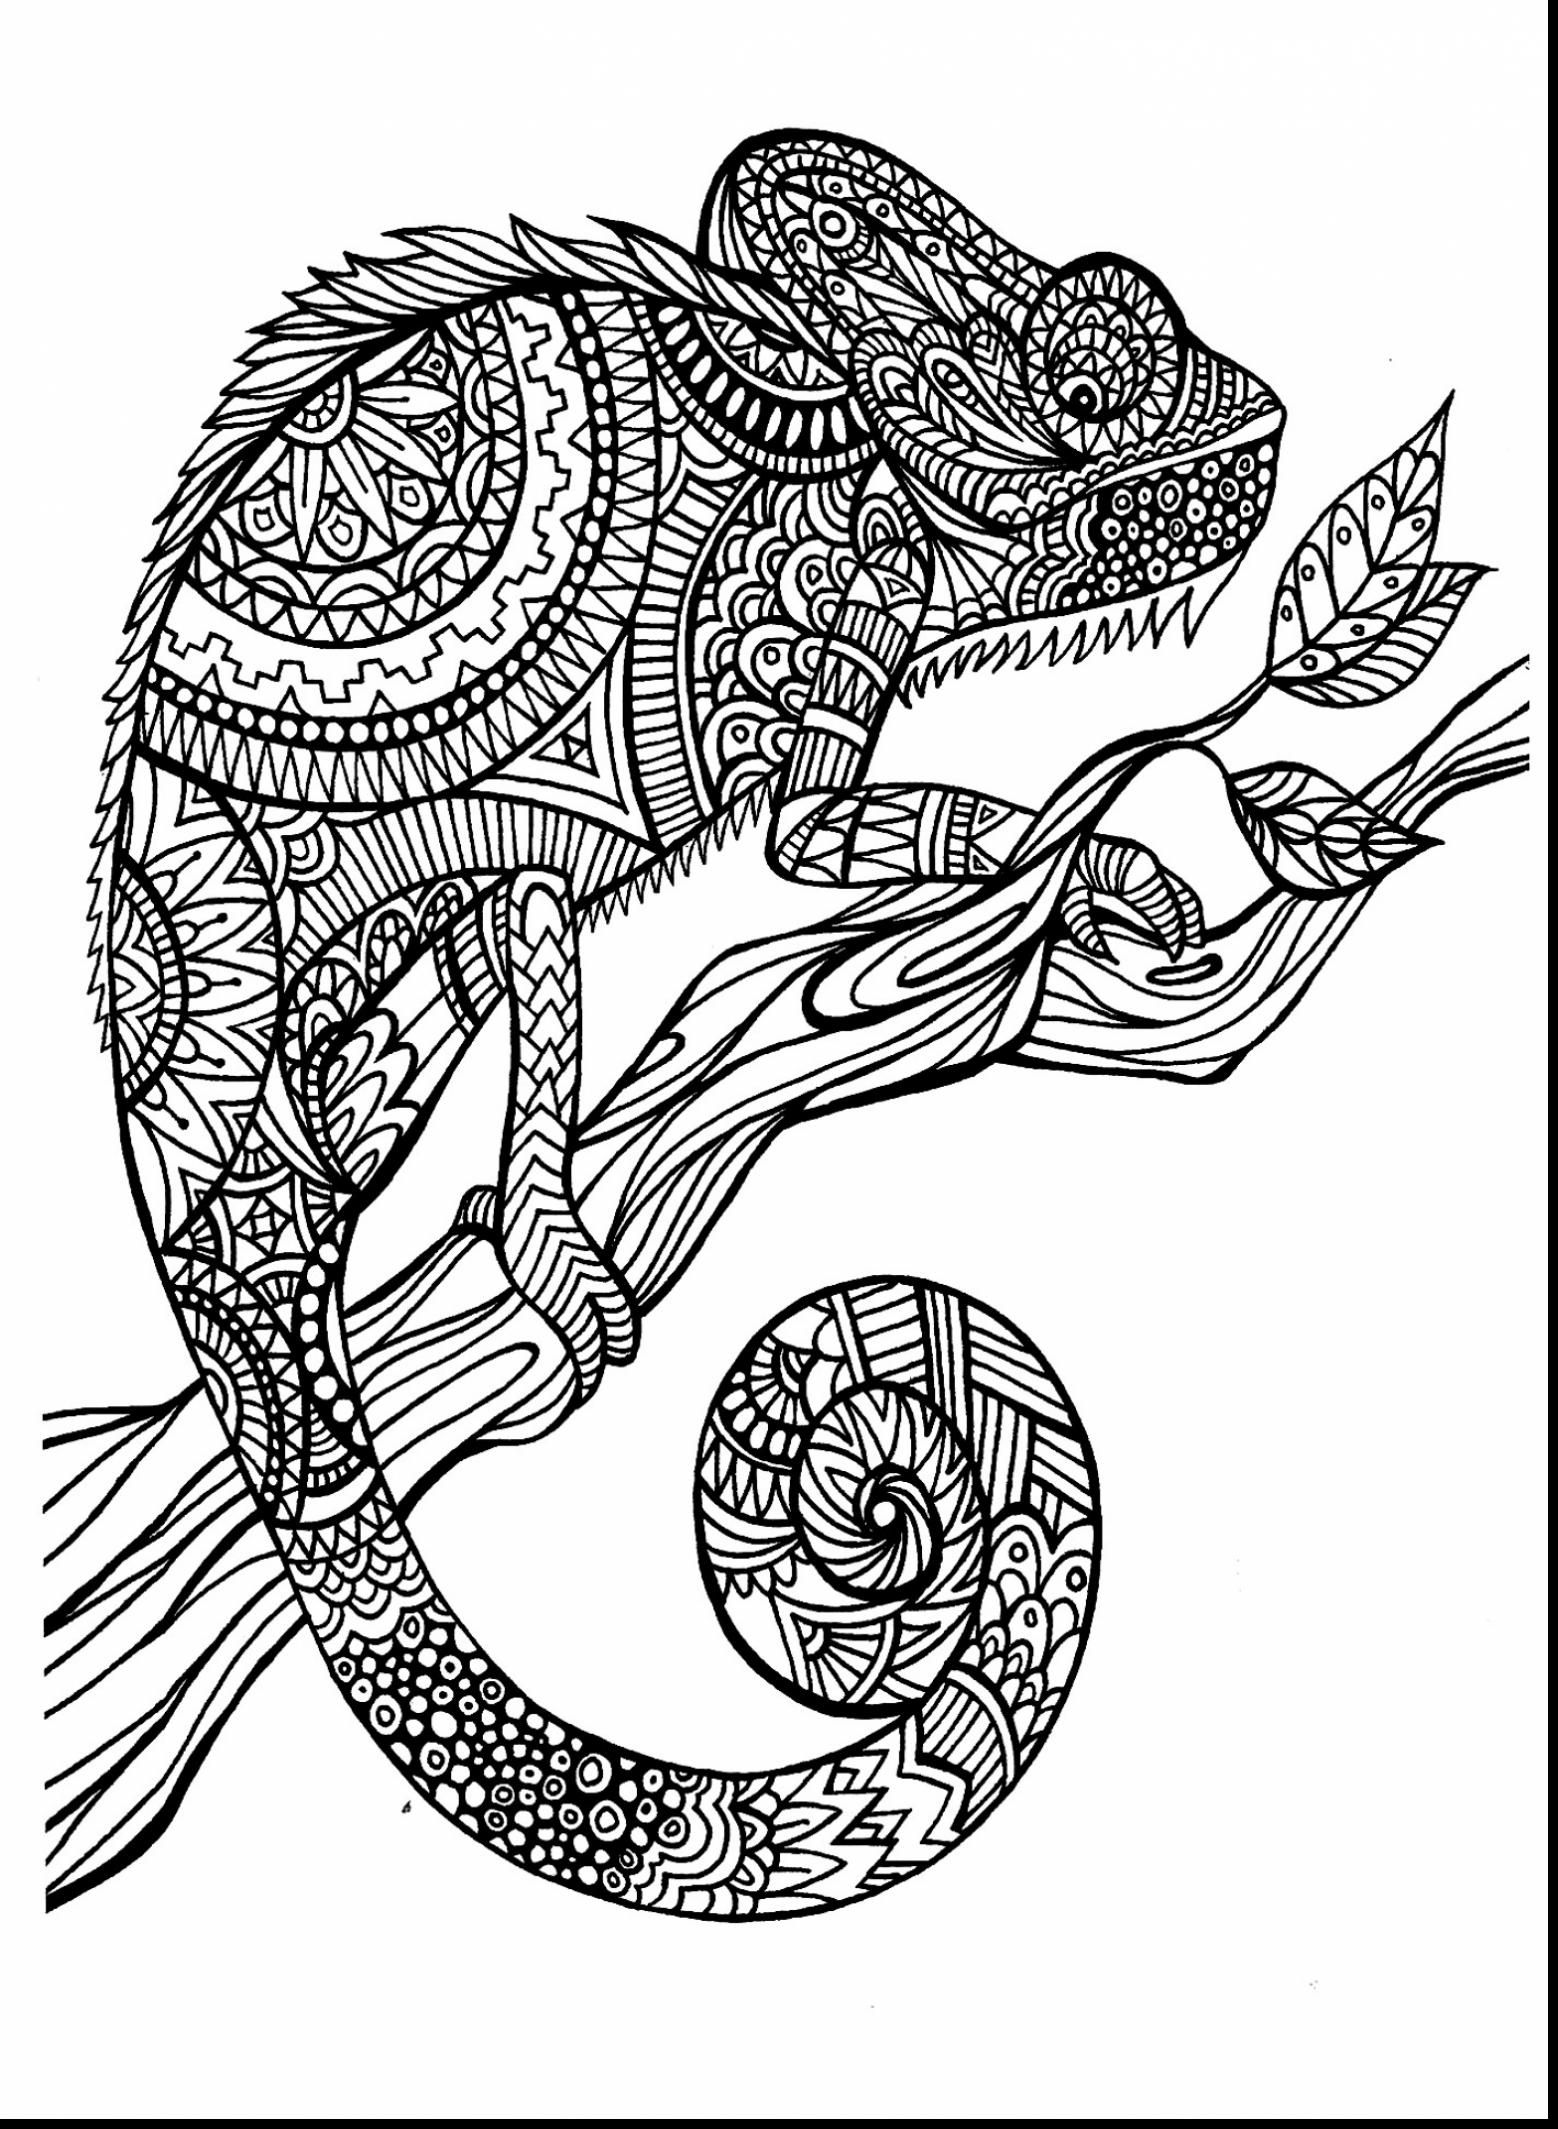 Dessin cameleon coloring sheets adult colouring pages animal coloring pages printable coloring